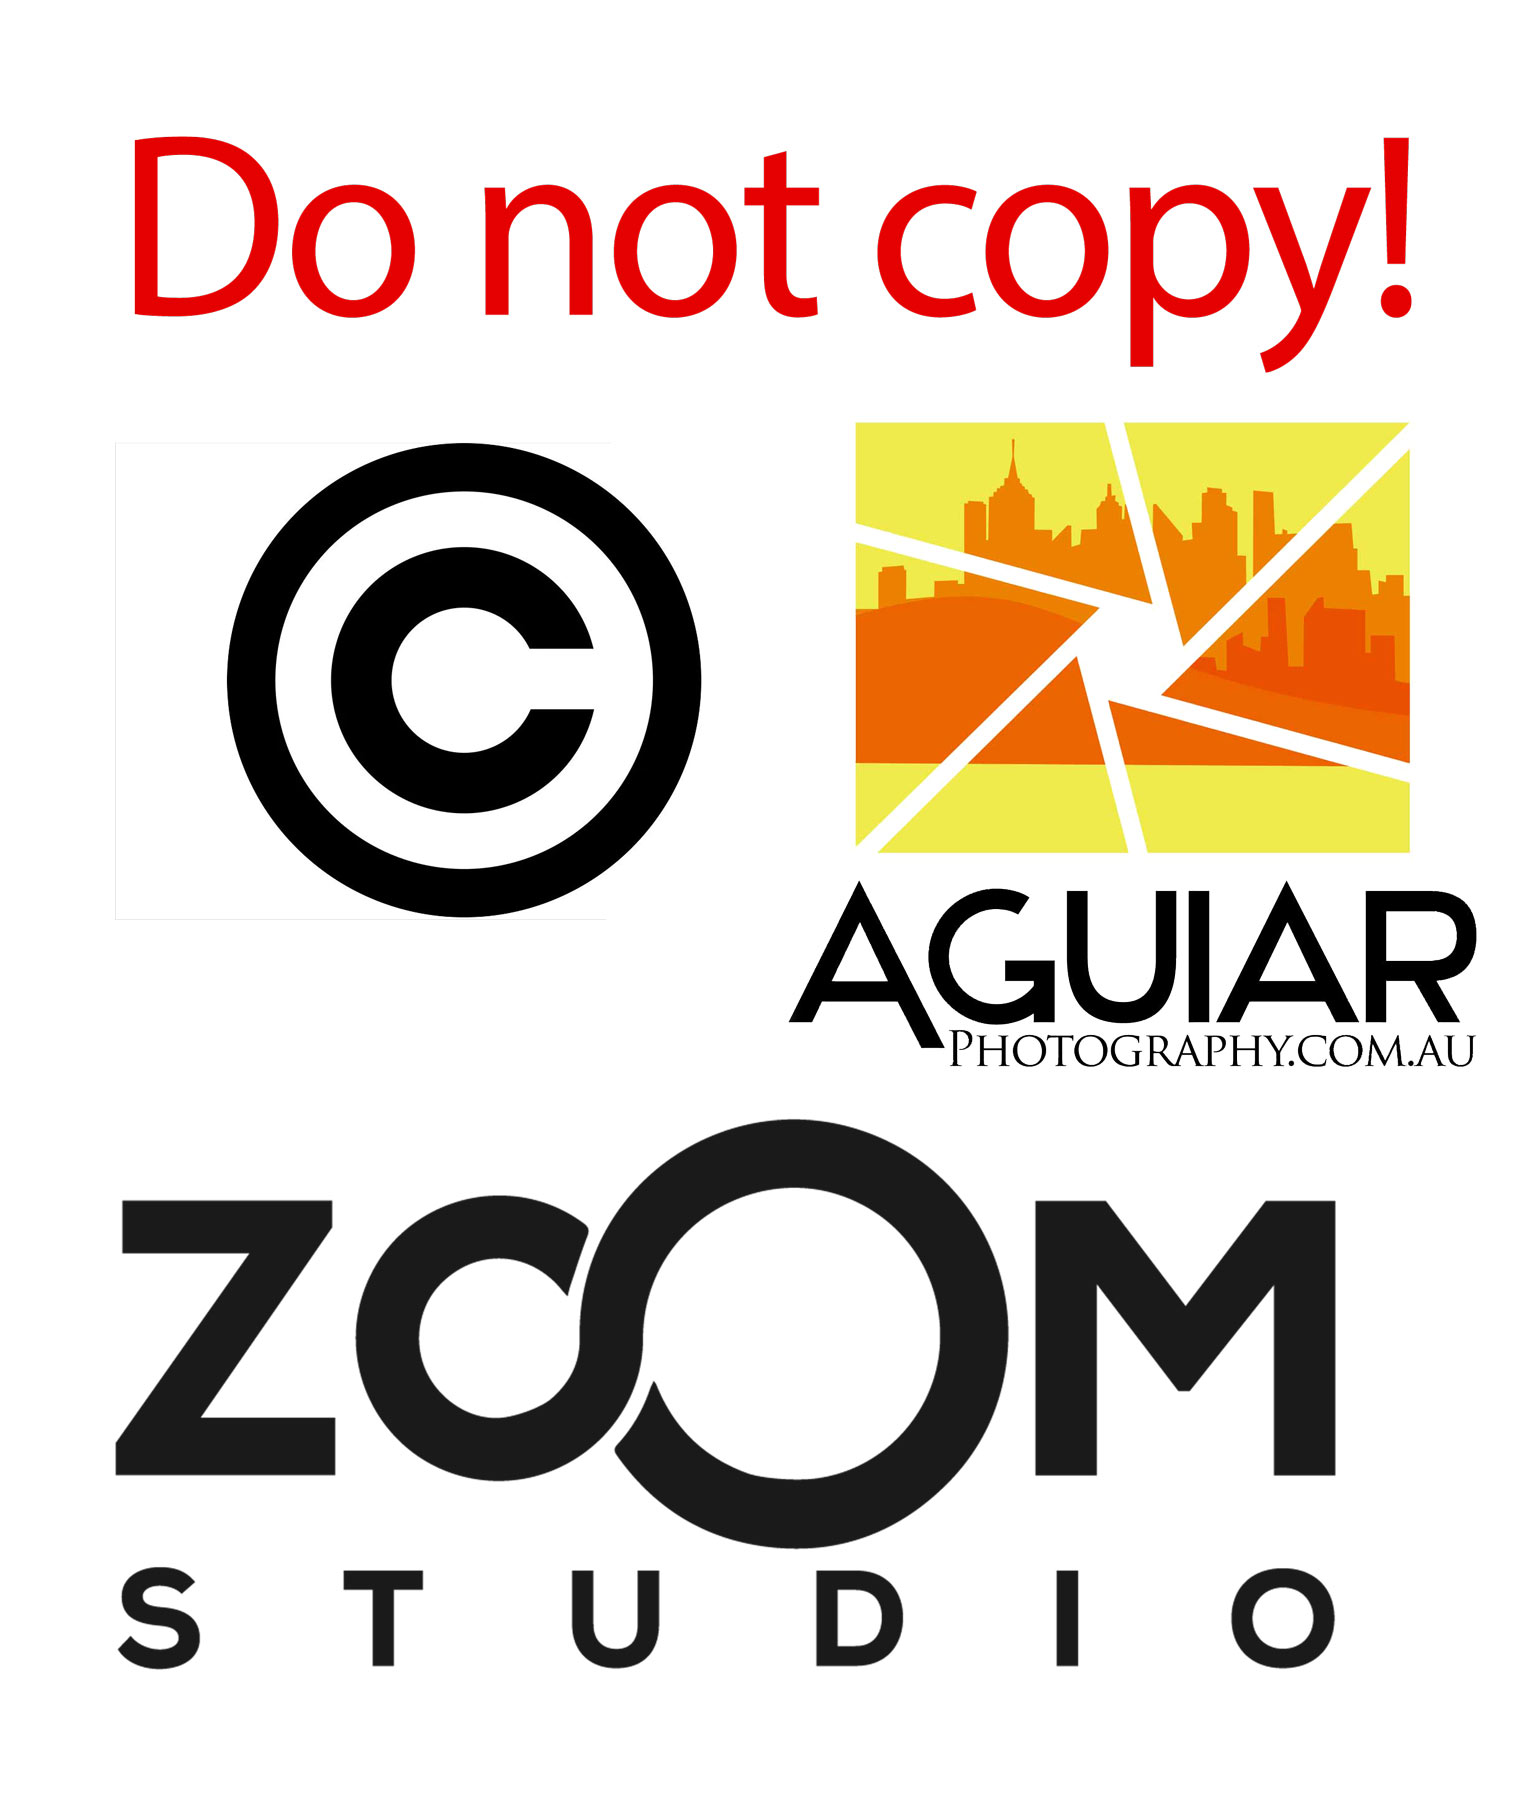 Do not copy aguiar photography and zoom studio